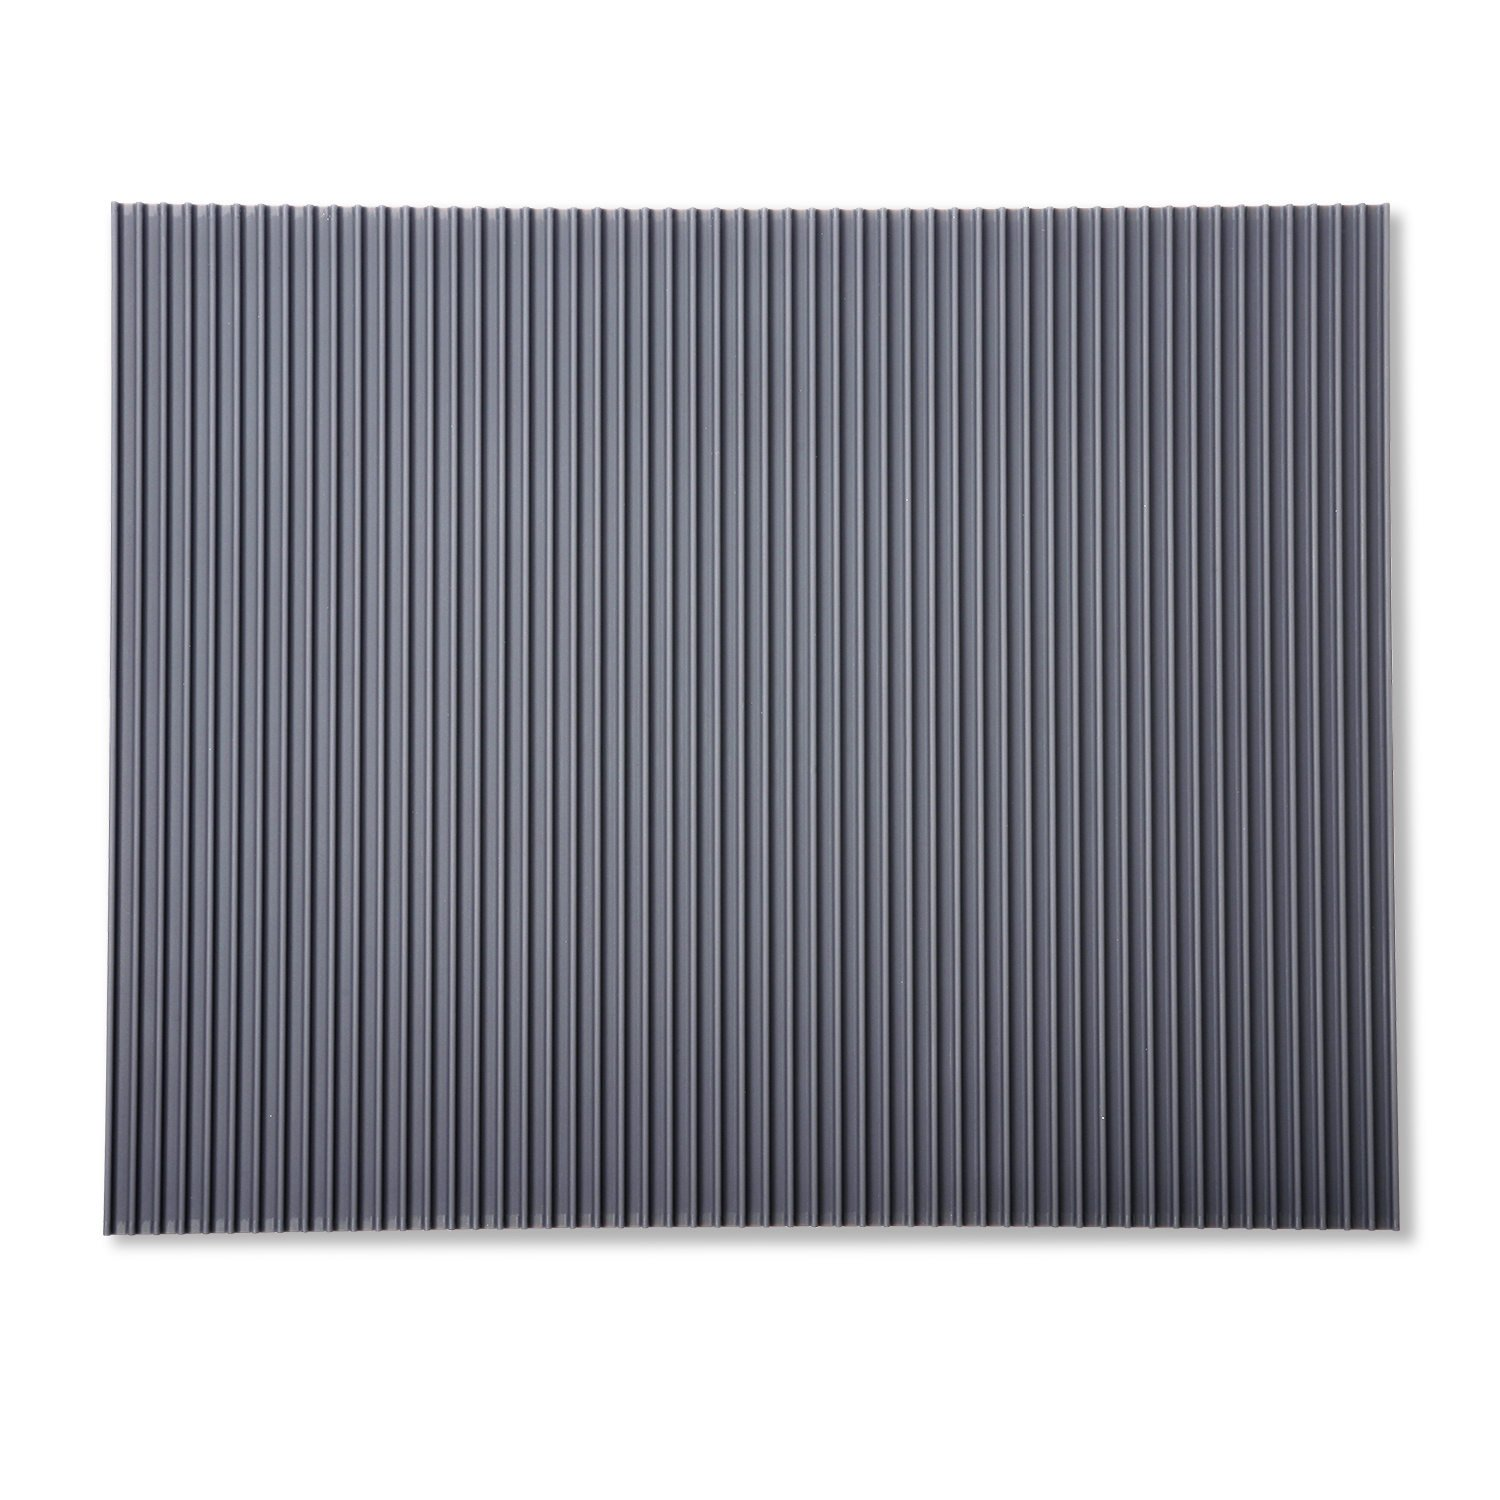 Miusco Silicone All Purpose Mat Size Large, Dish Drying, Non-Slip, Heat Resistant, 20 X 16 Inch, Grey